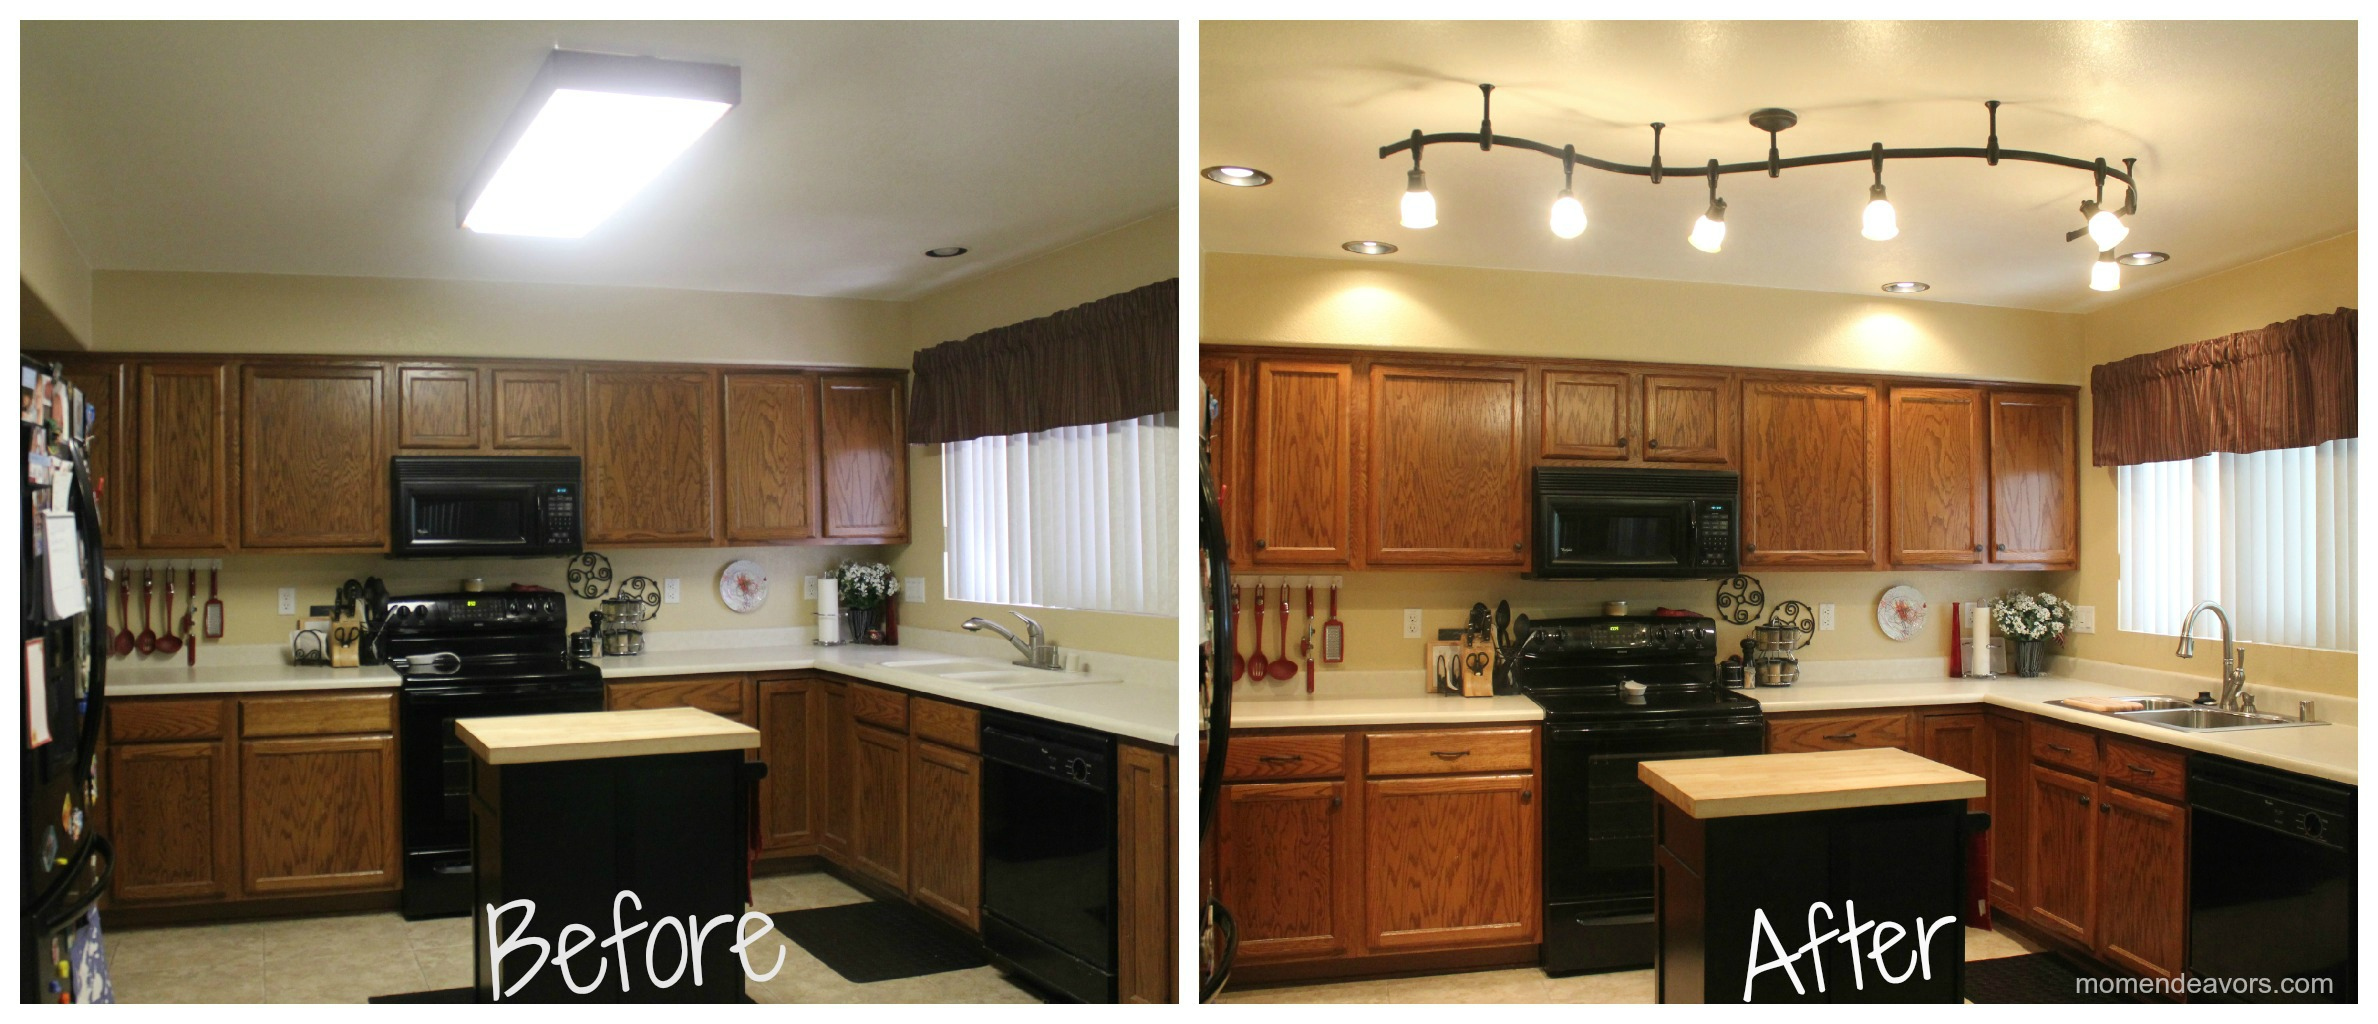 Lighting Kitchen Mini Kitchen Remodel New Lighting Makes A World Of Difference